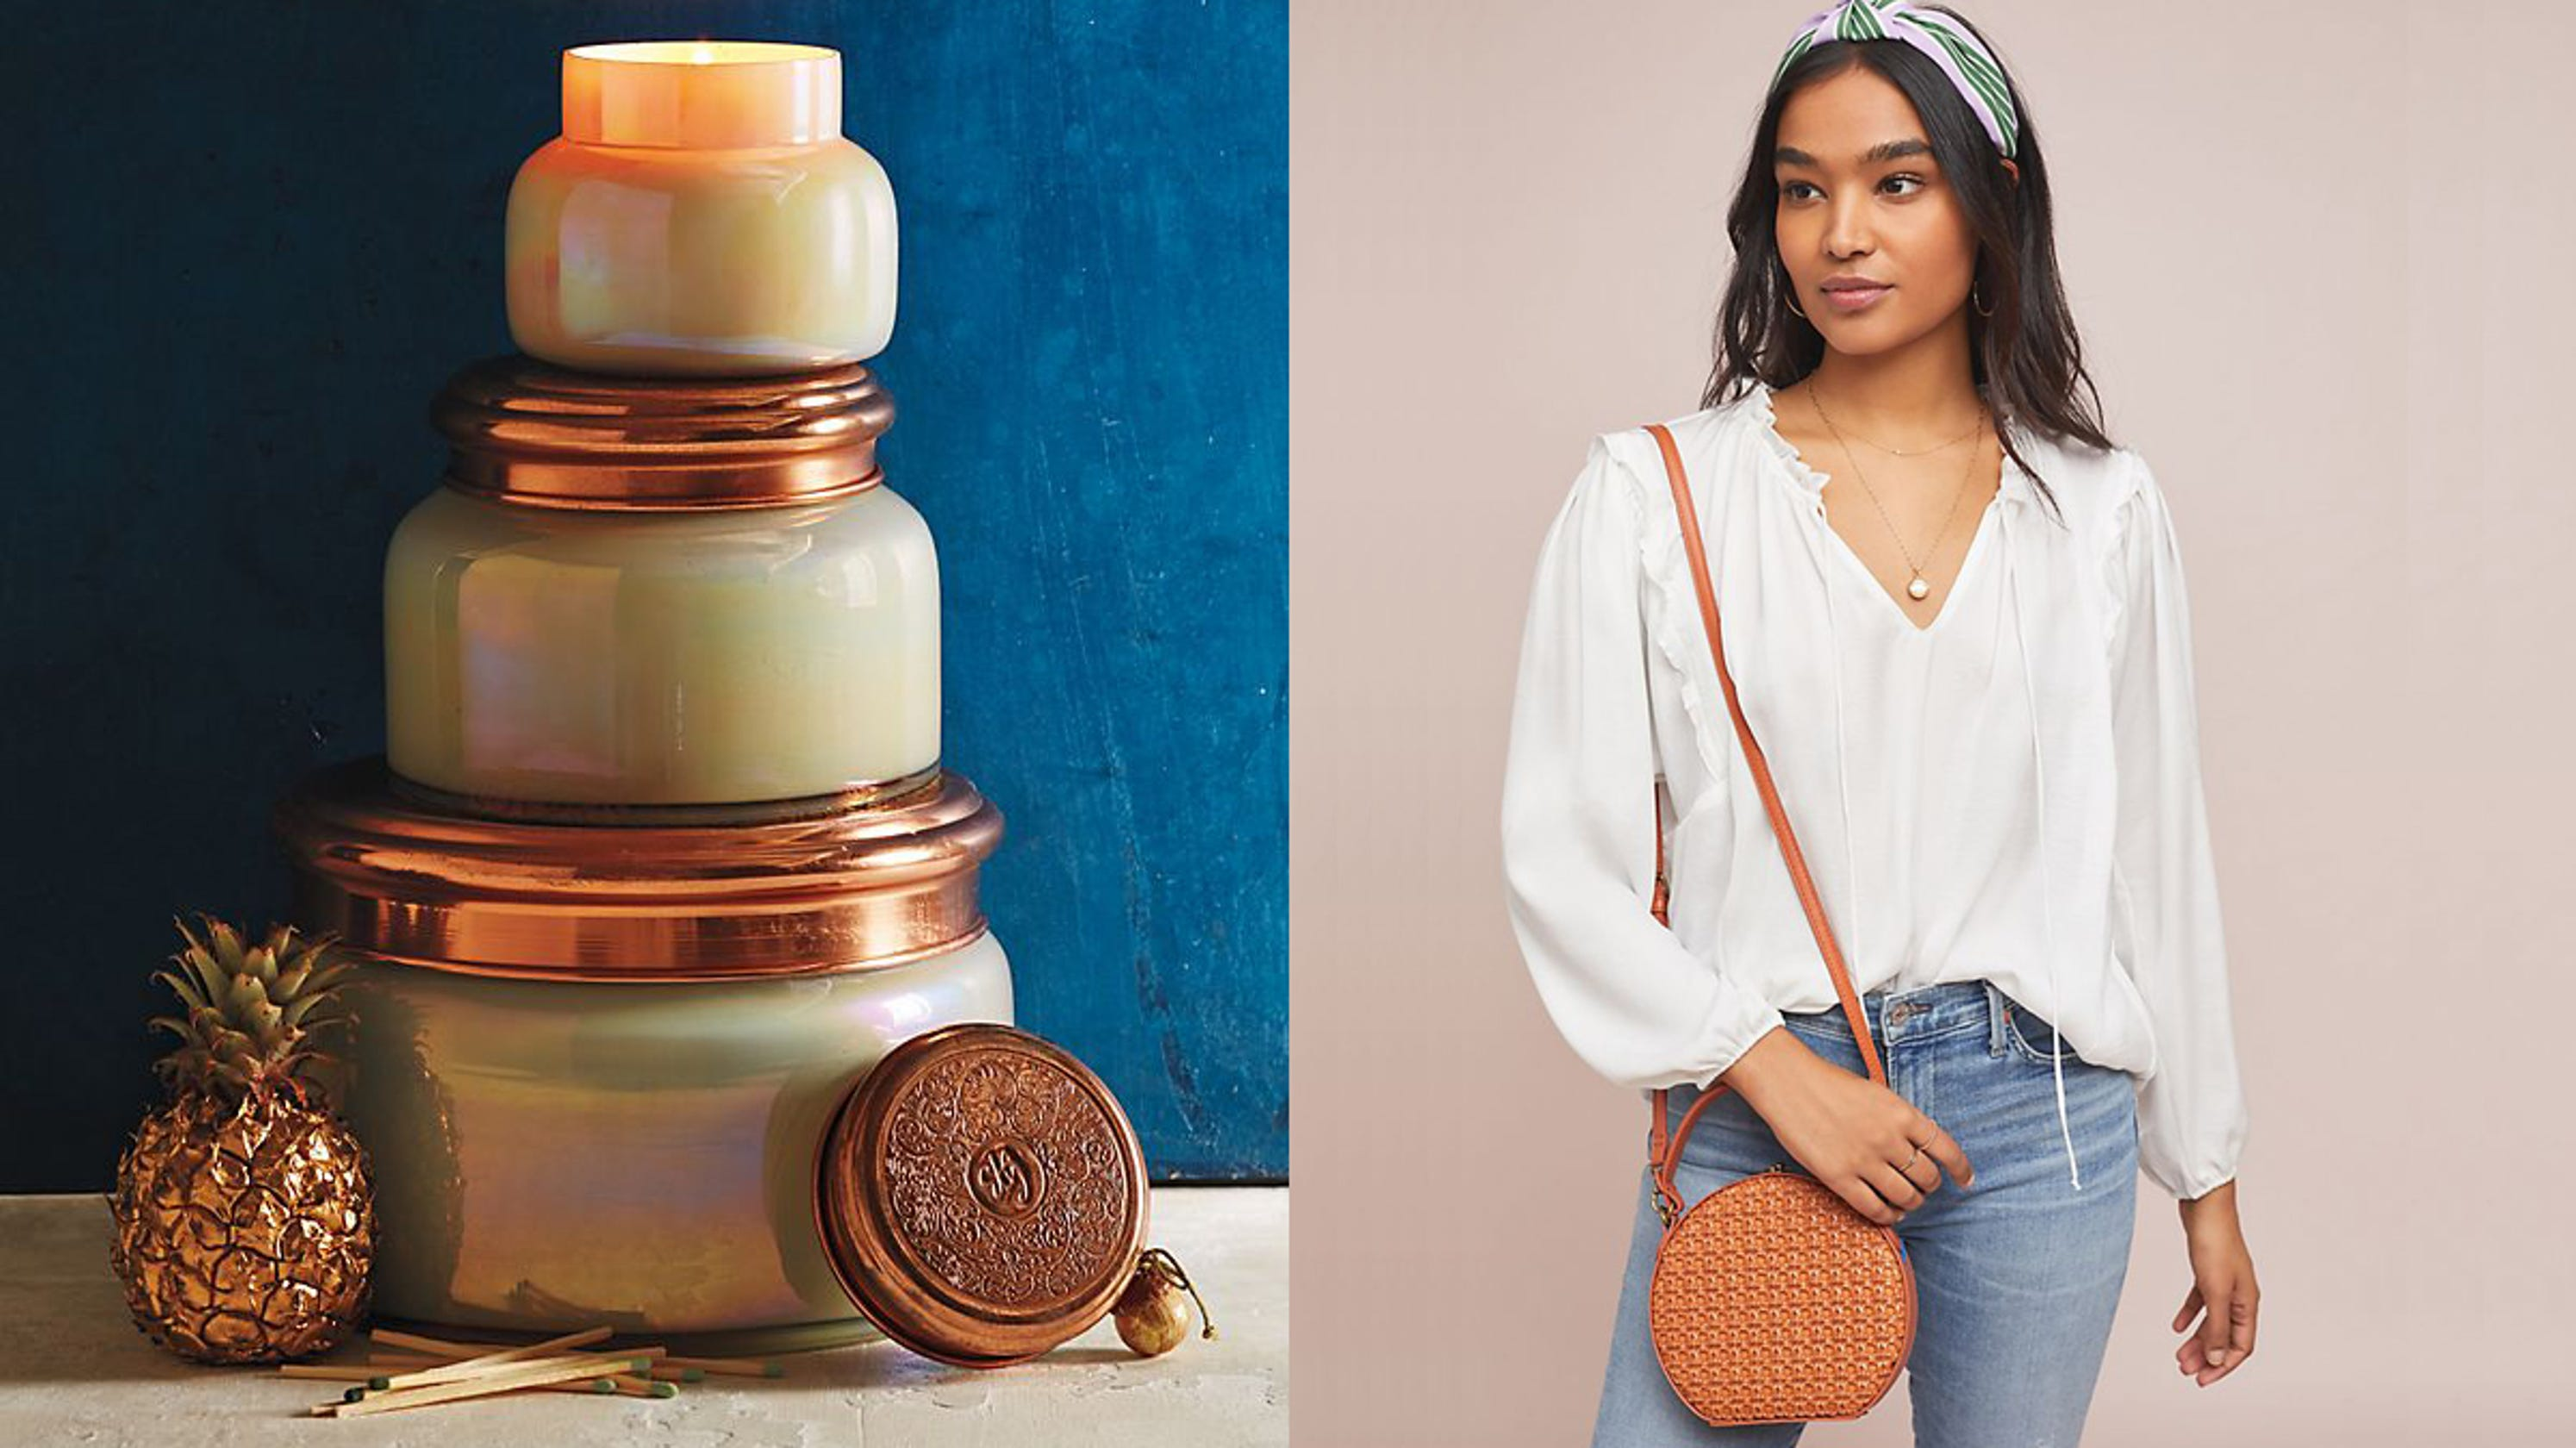 780552feb0ea Anthro Day 2019: 16 amazing deals from Anthropologie's massive ...